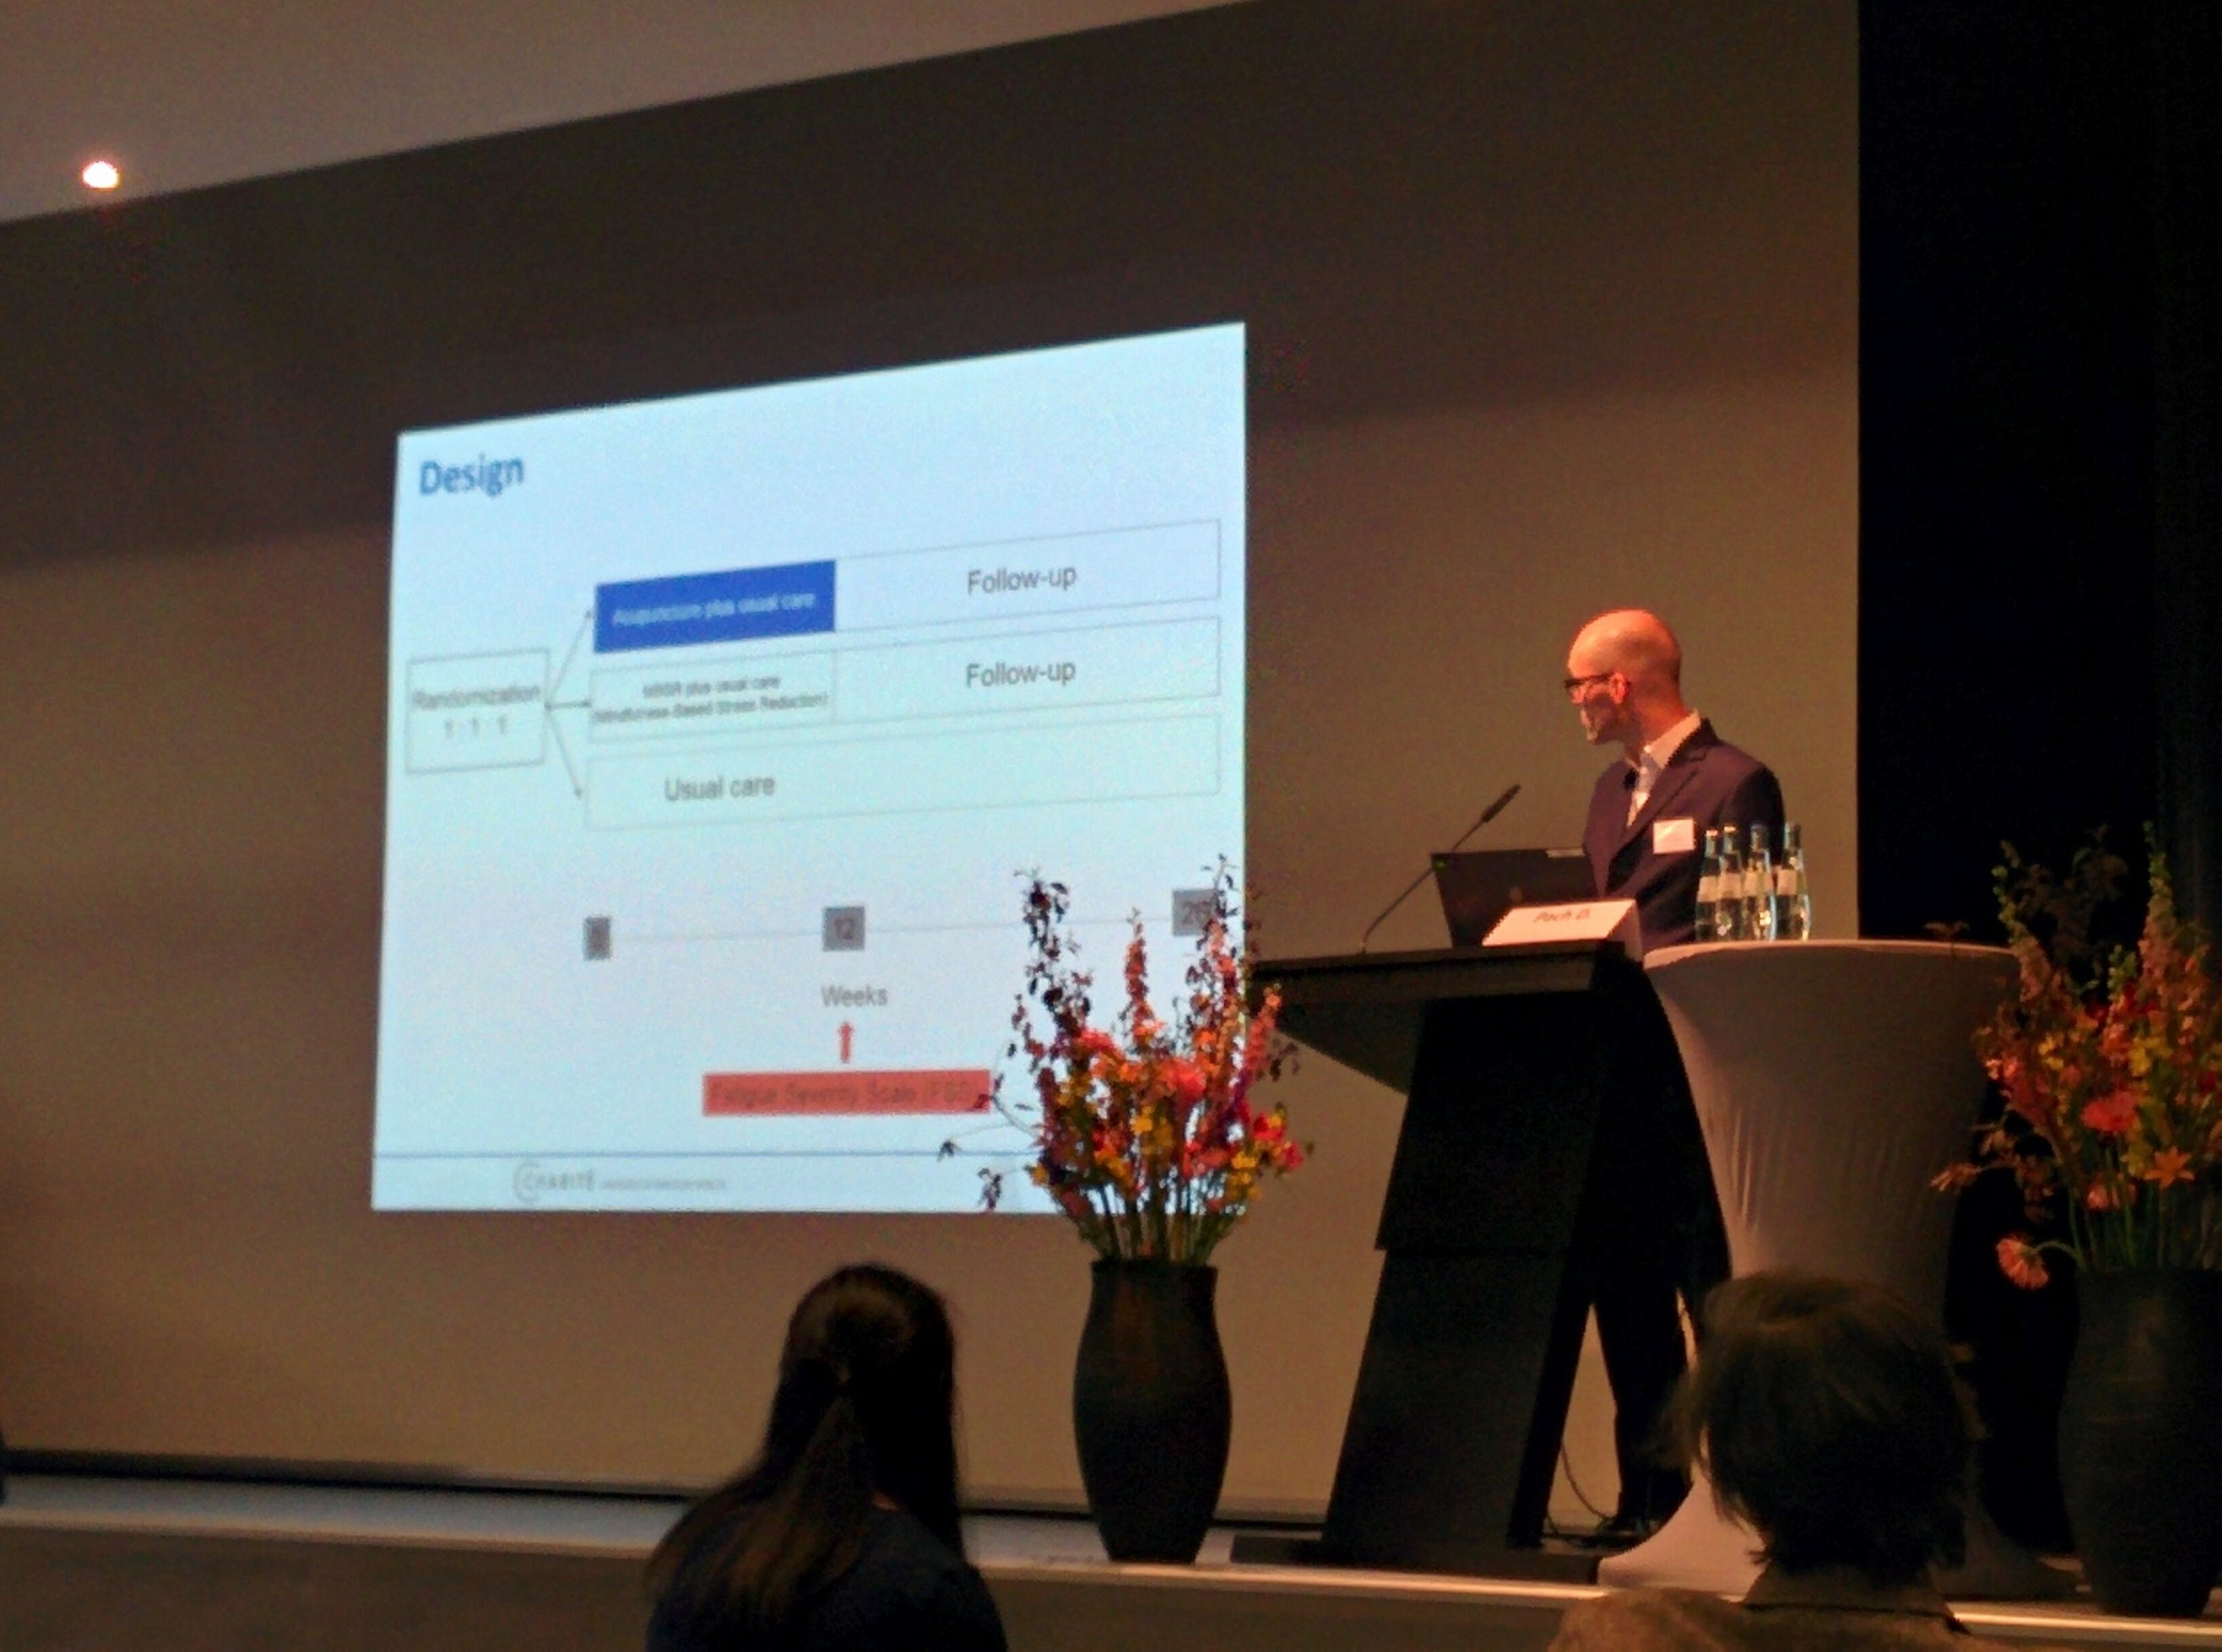 Dr. Daniel Pach, presenting preliminary results on Acupuncture for multiple sclerosis related fatigue in Berlin ISCMR 2017